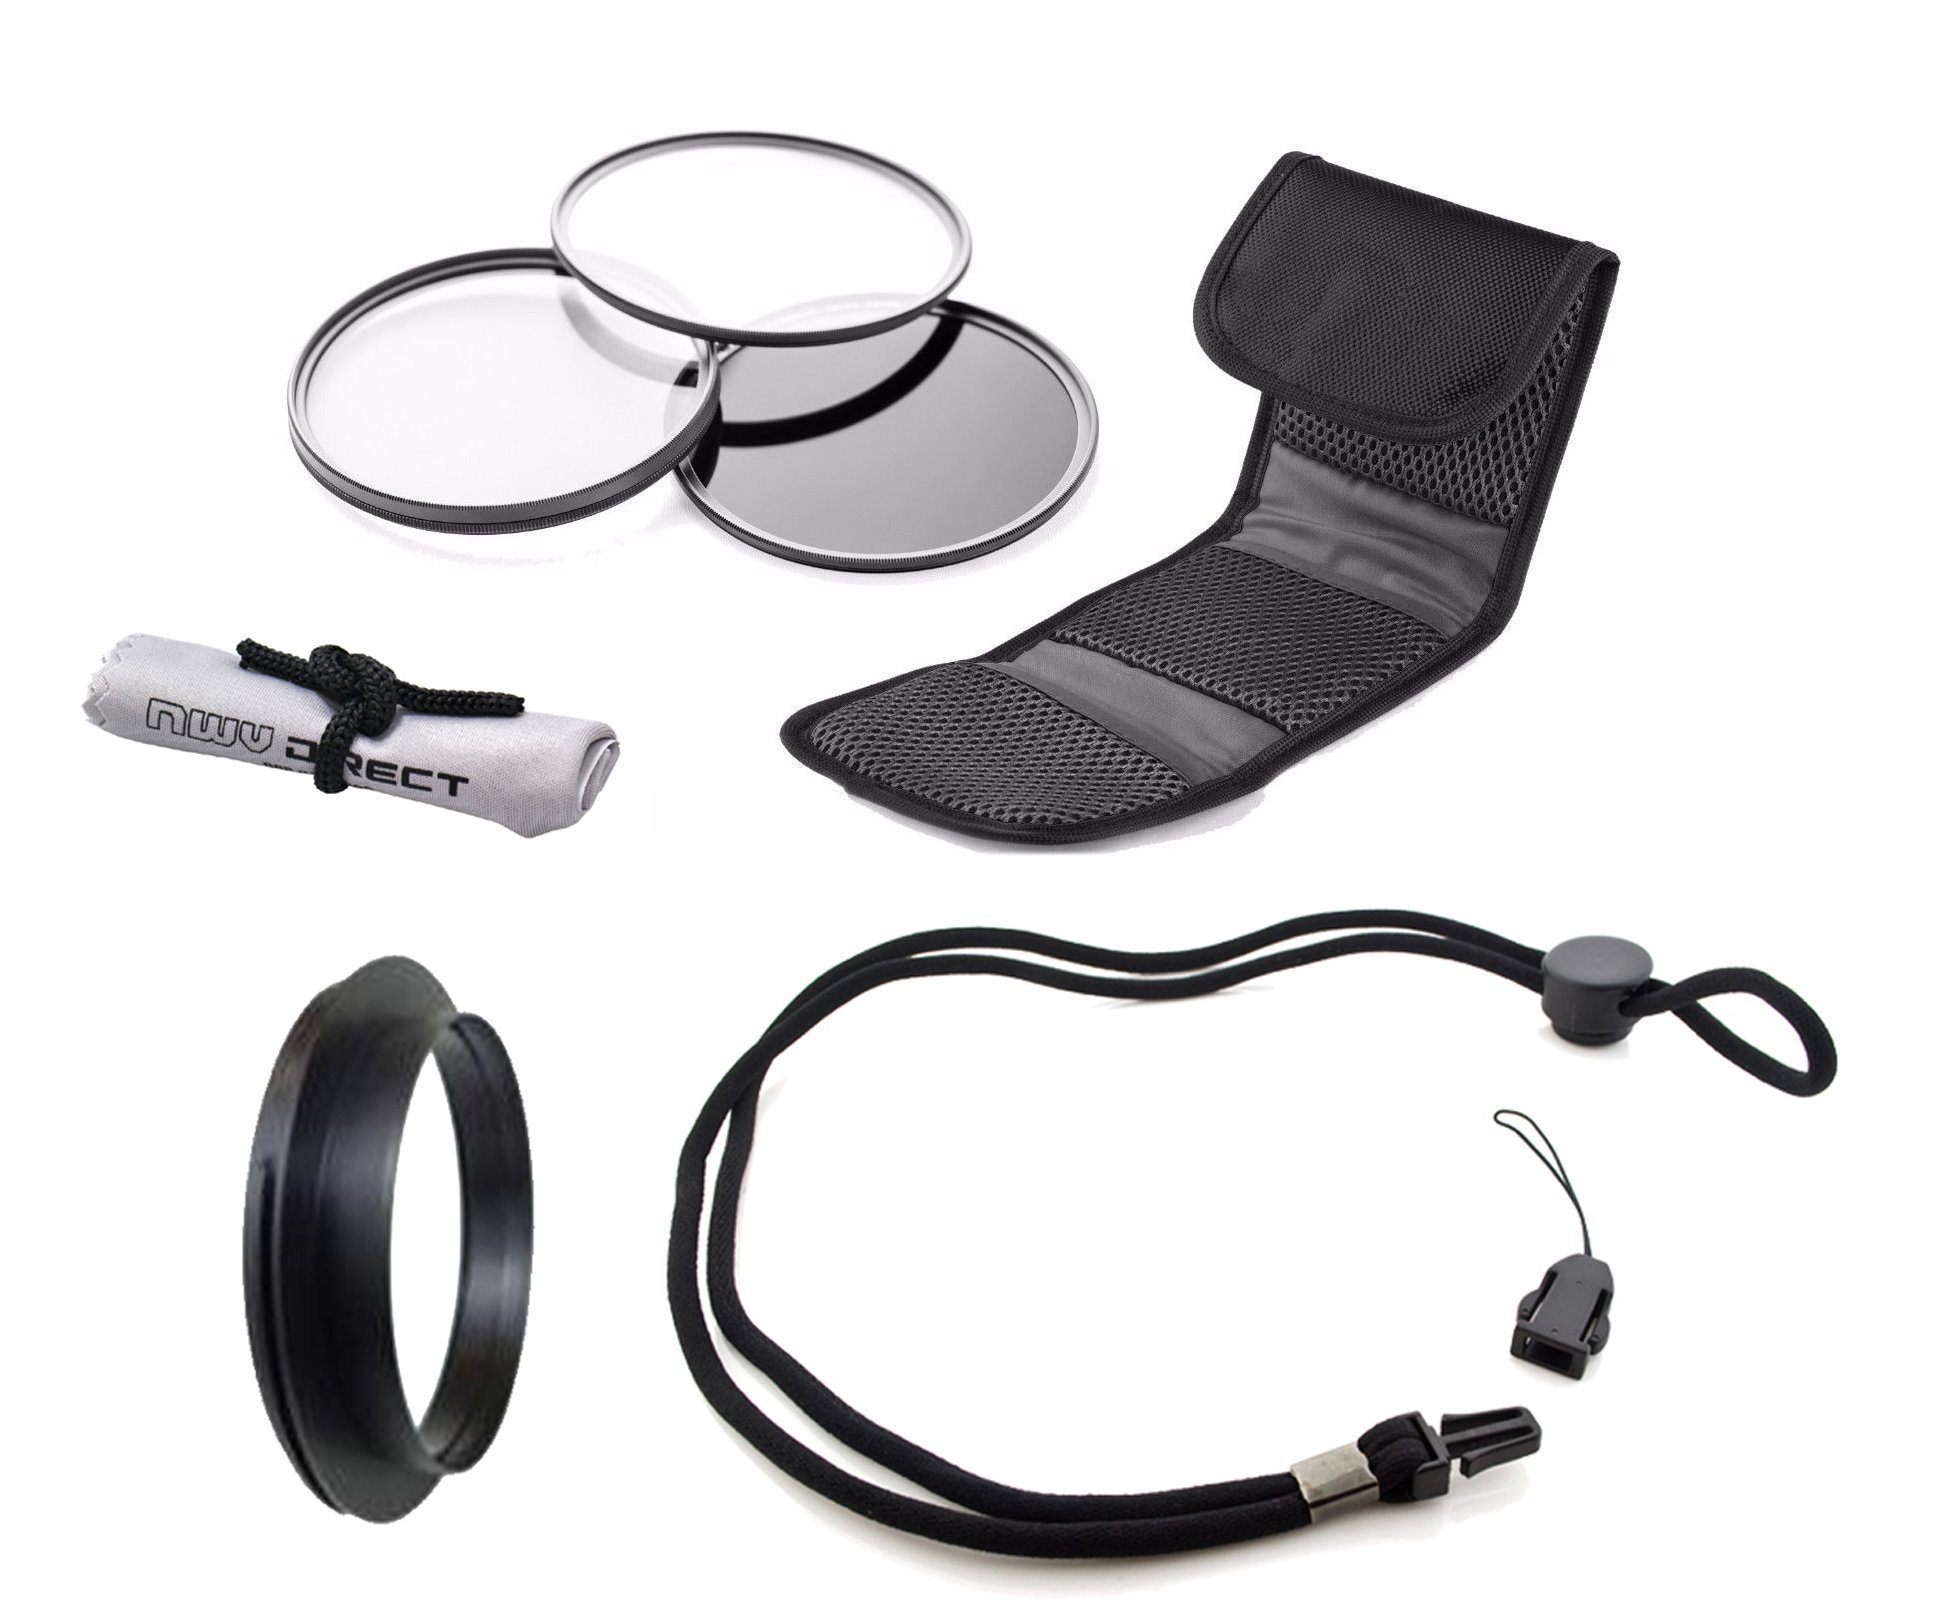 Olympus Stylus Tough TG-3 High Grade Multi-Coated, Multi-Threaded, 3 Piece Lens Filter Kit (40.5mm) + Lens/Filter Ring + Krusell Multidapt Neck Strap + Nw Direct Microfiber Cleaning Cloth